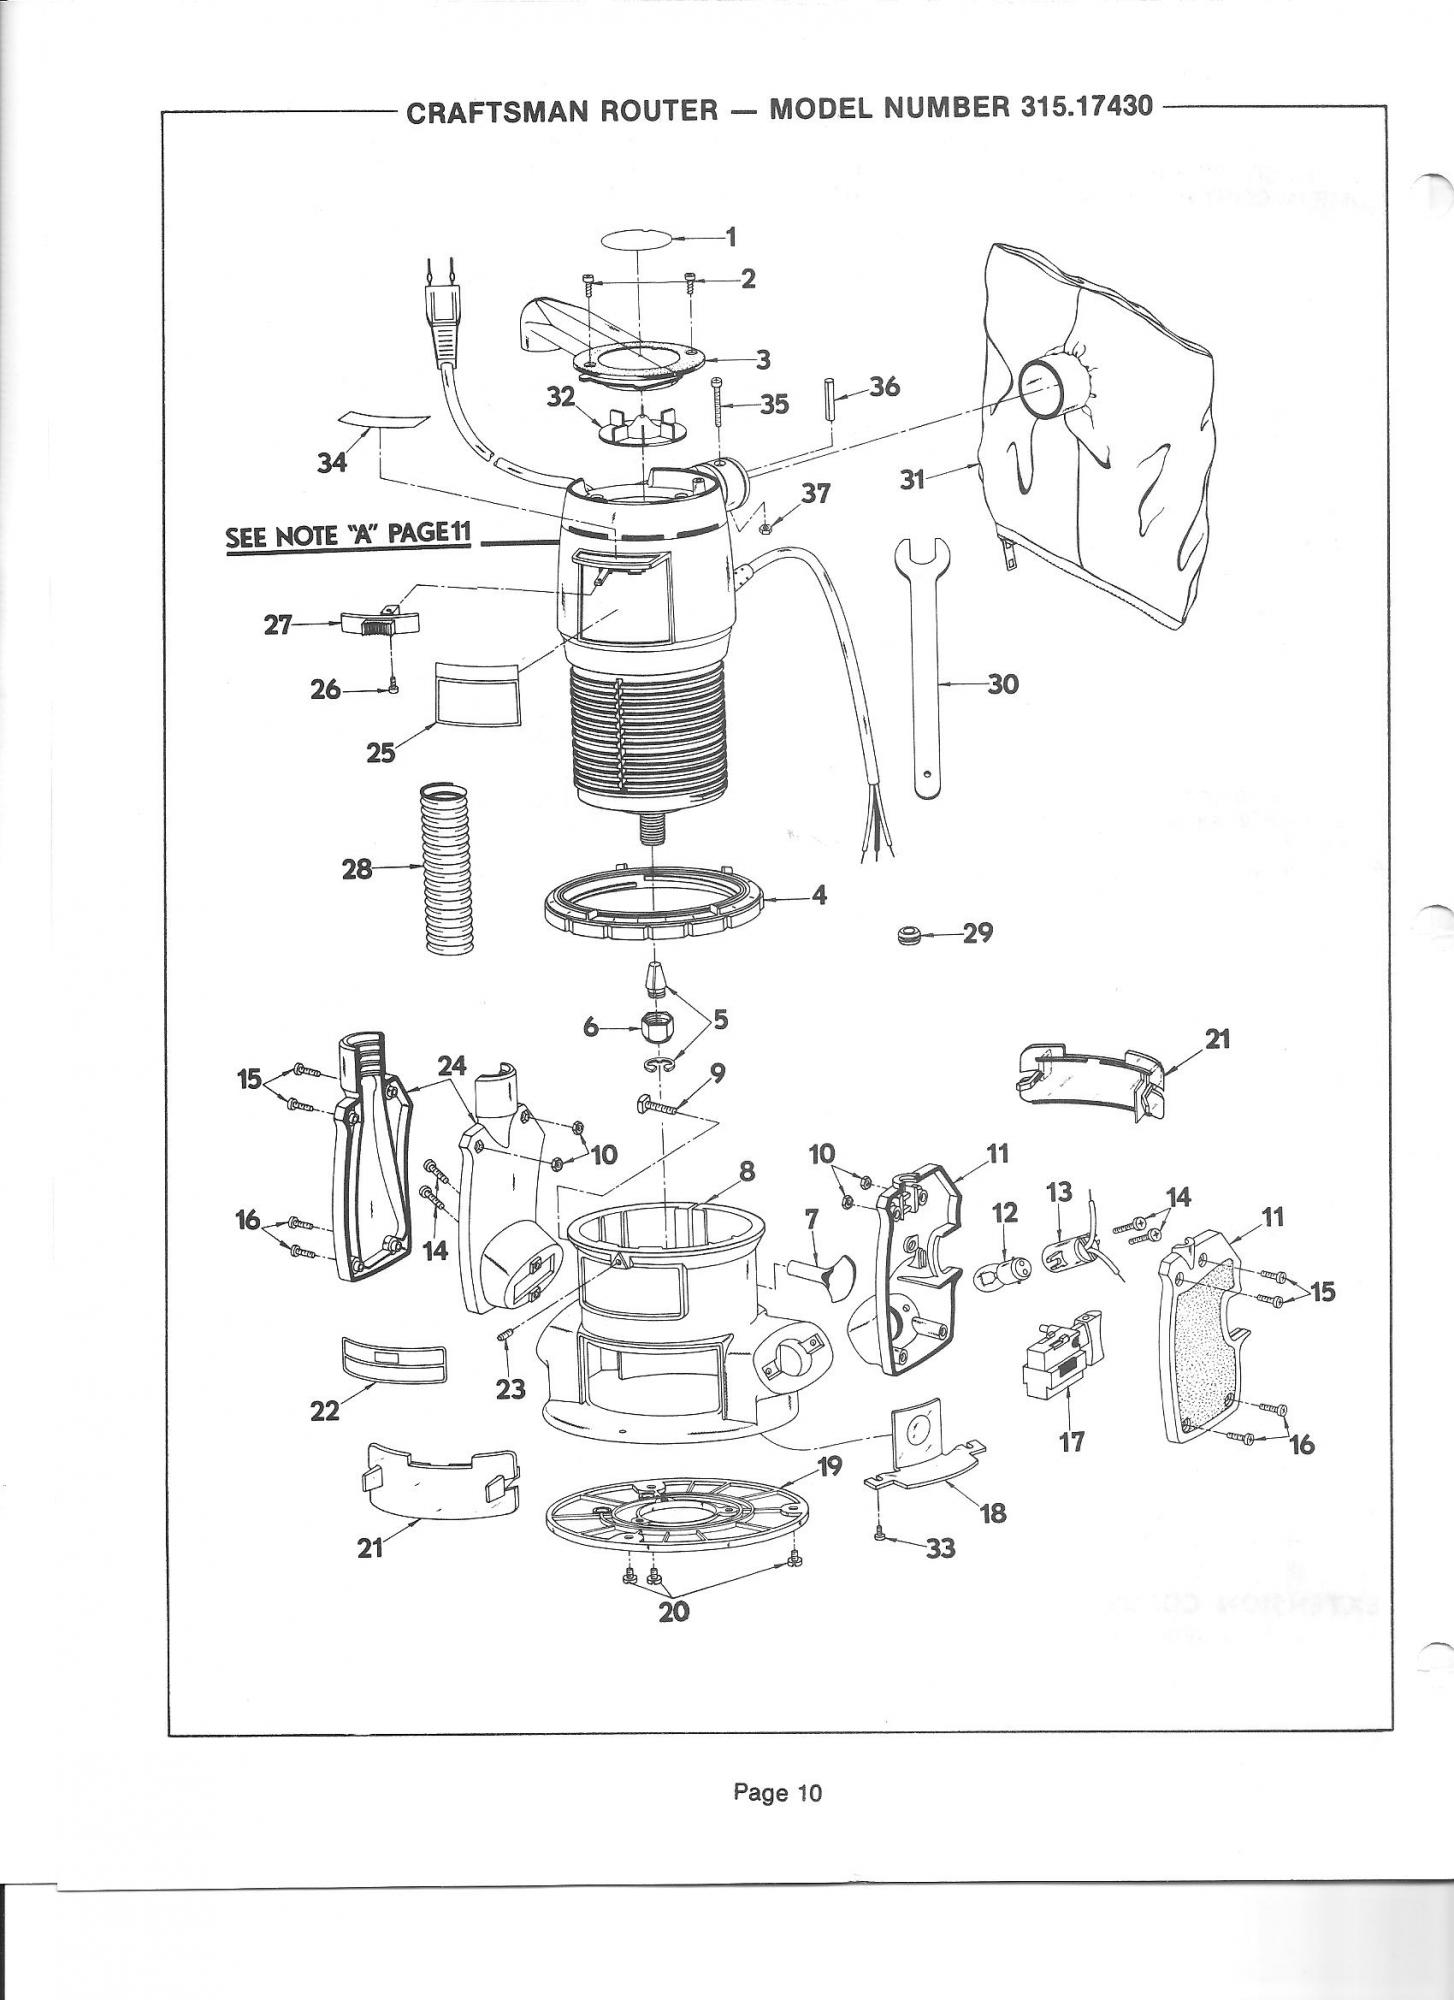 router craftsman manual 315 17430 router forums rh routerforums com Craftsman Router Owner's Manual Craftsman Router Manual PDF